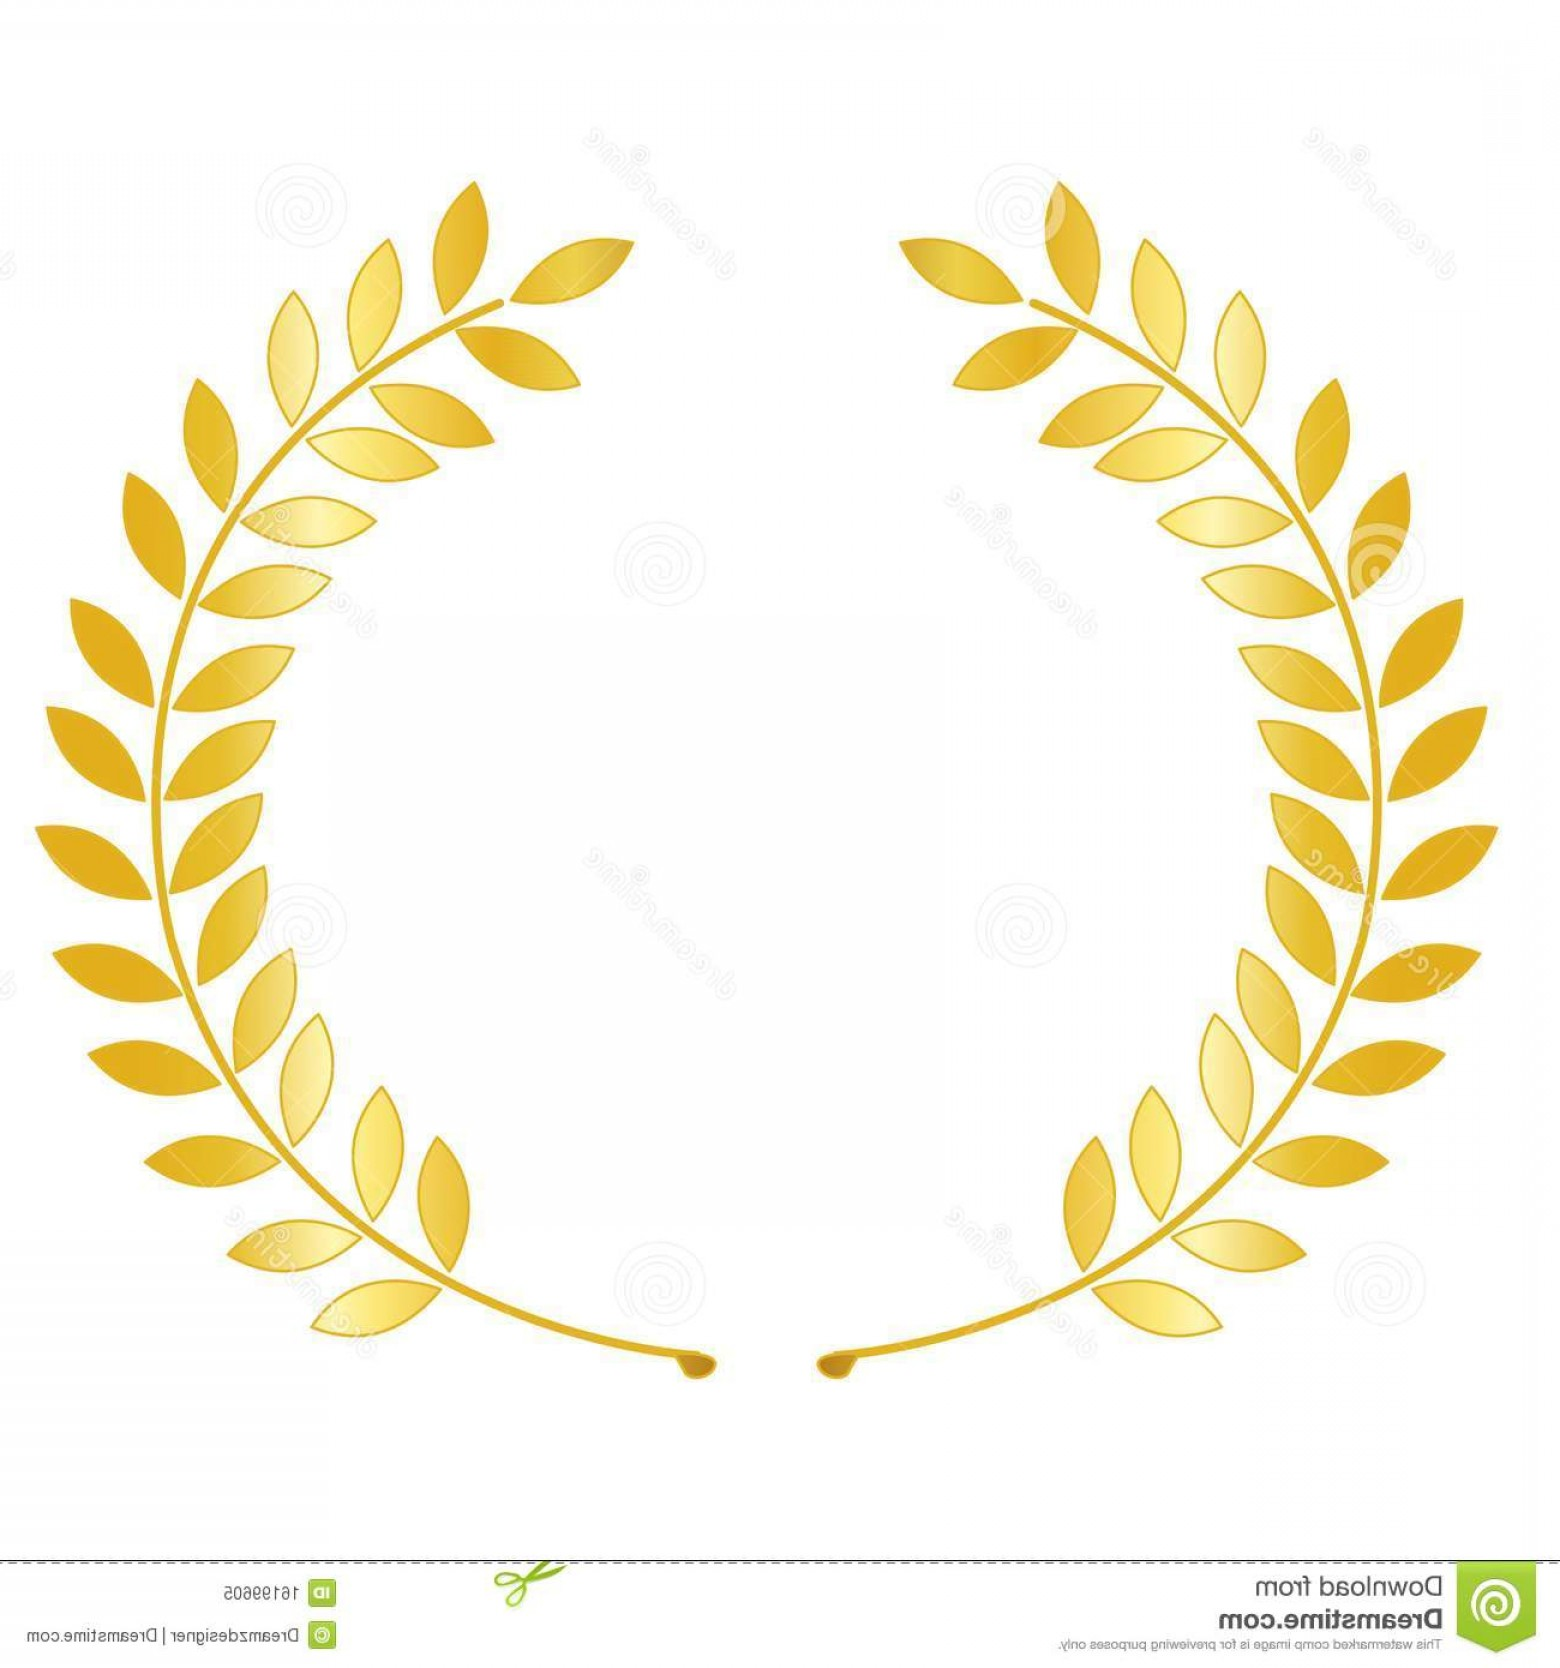 Royalty Free Stock Photo Gold Laurel Wreath Image.